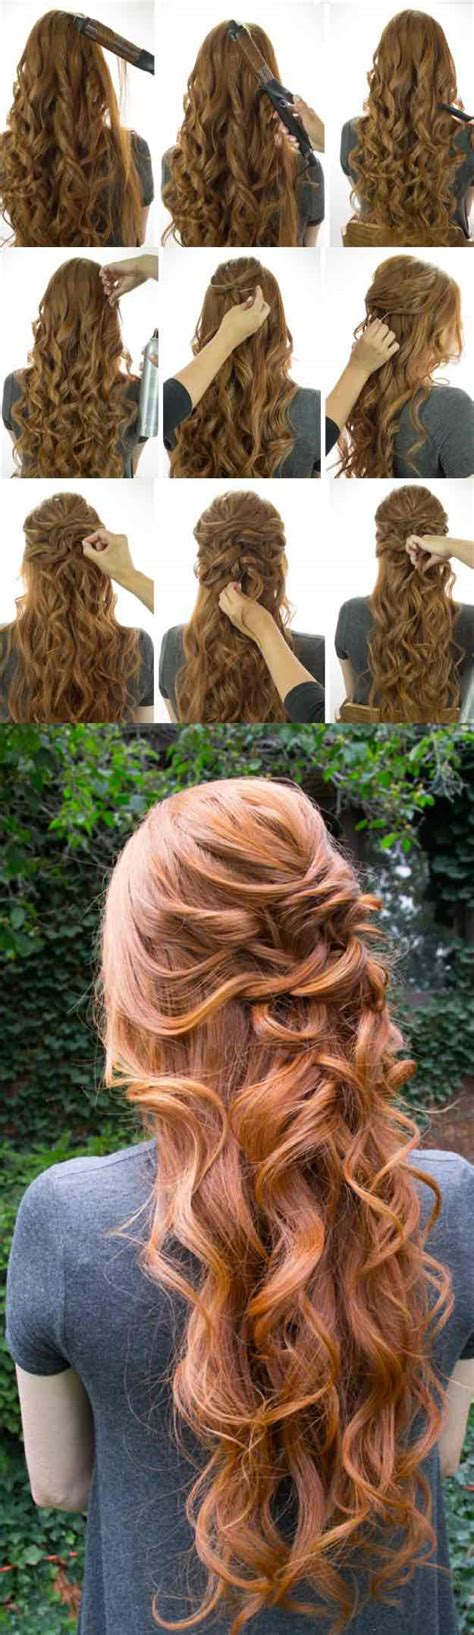 Easy Half Up Half Hairstyles by 25 Easy Half Up Half Hairstyle Tutorials For Prom